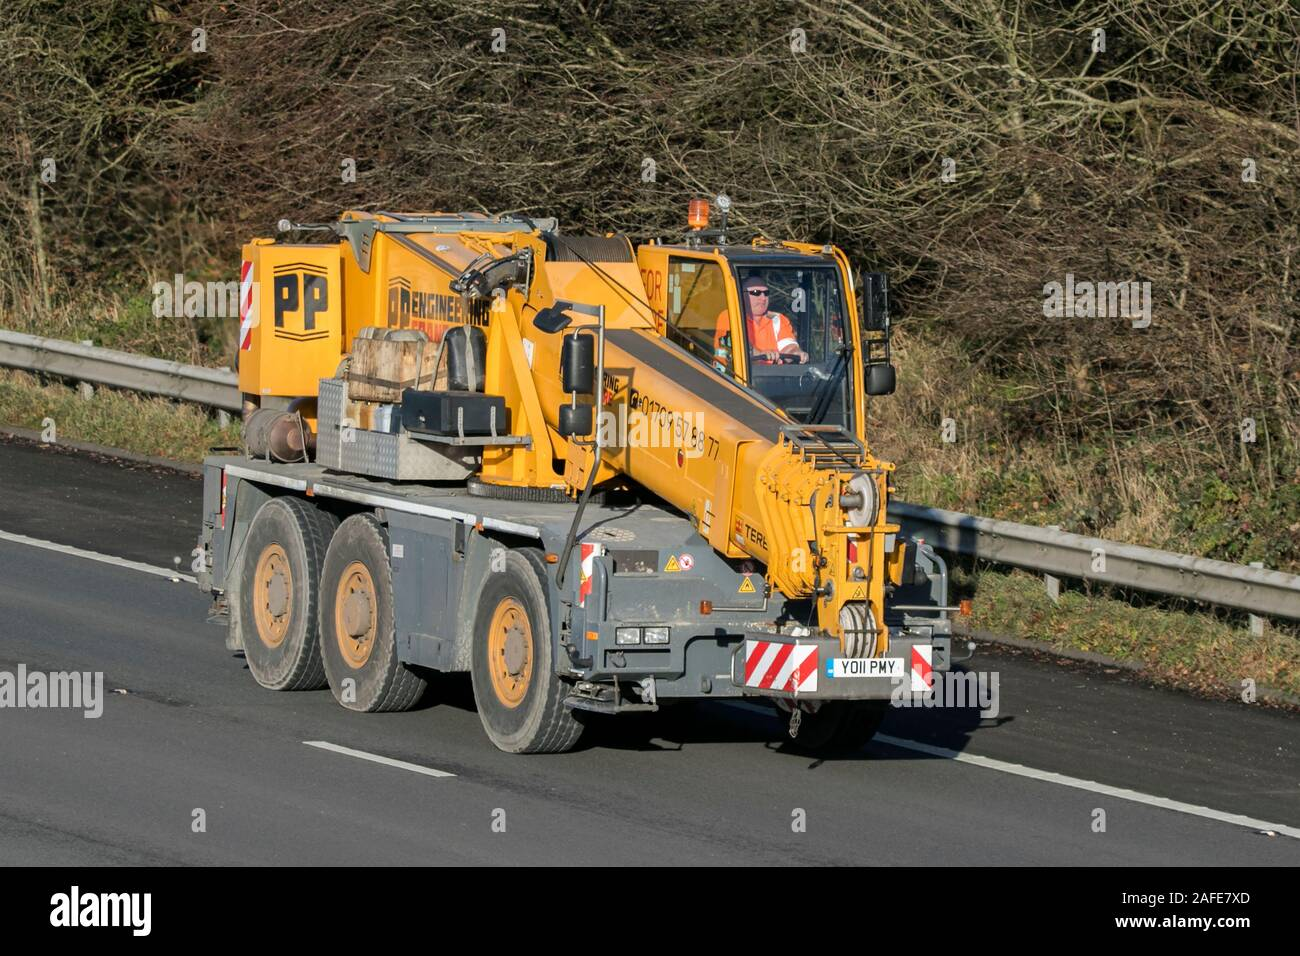 PP engineering telehandler driving on the M61 motorway near Manchester, UK Stock Photo